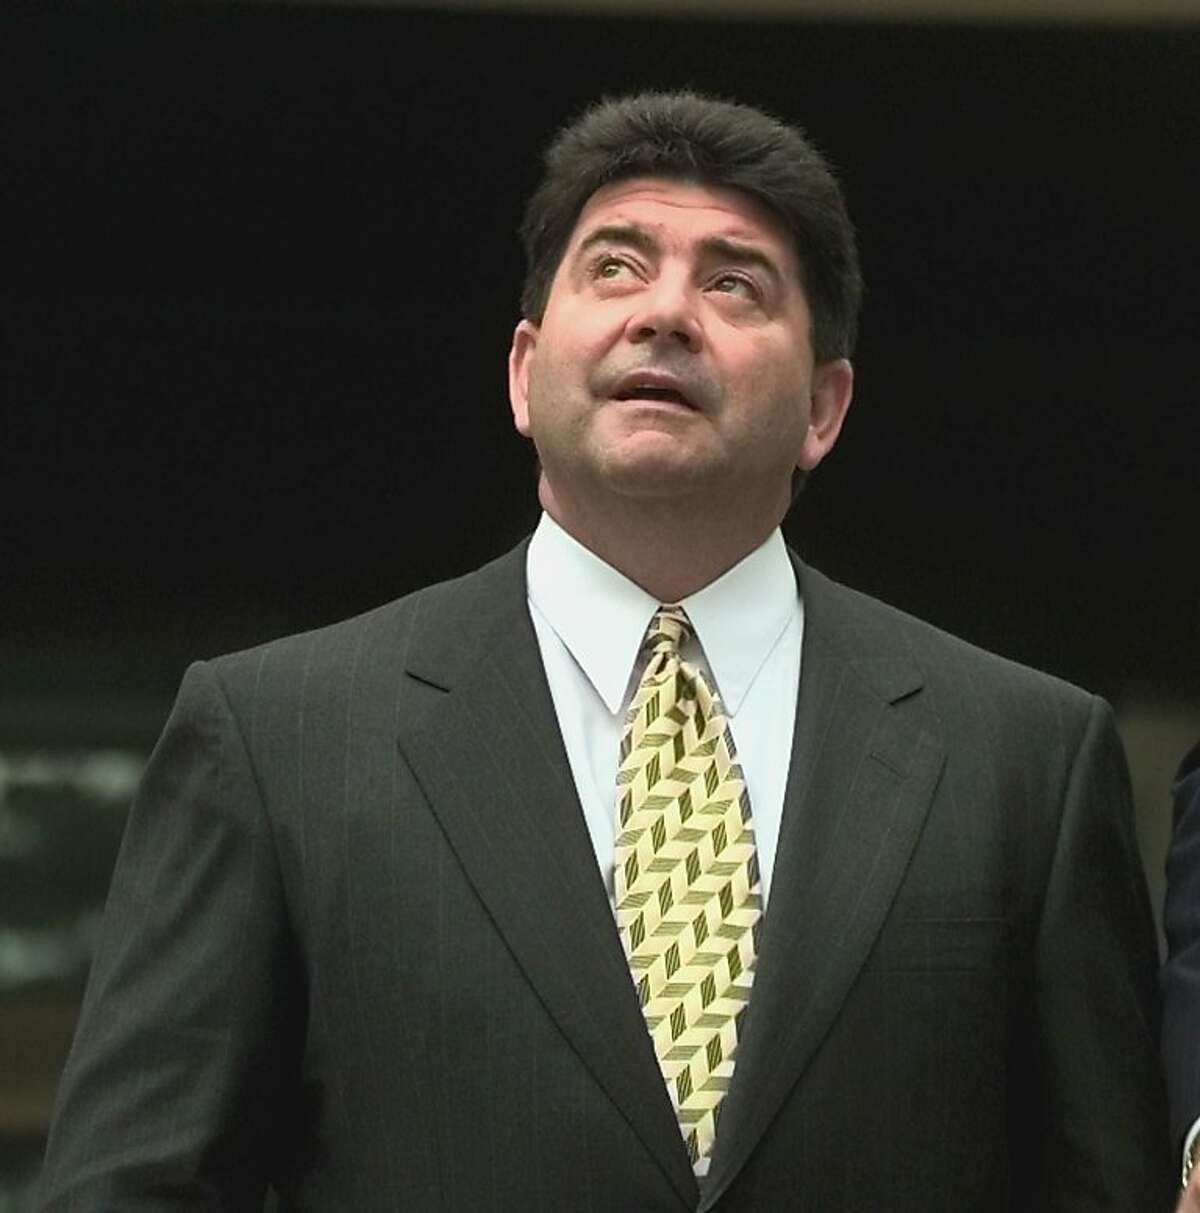 San Francisco 49ers owner Eddie DeBartolo, Jr.looks to the sky as he leaves the Federal Court House in Baton Rouge, La. Tuesday Oct. 6, 1998. DeBartolo pleaded guilty to concealing an alleged extortion and fraud scheme involving former Louisiana Governor Edwin Edwards. DeBartolo, 51, was placed on probation and assessed a total of $1 million in penalties